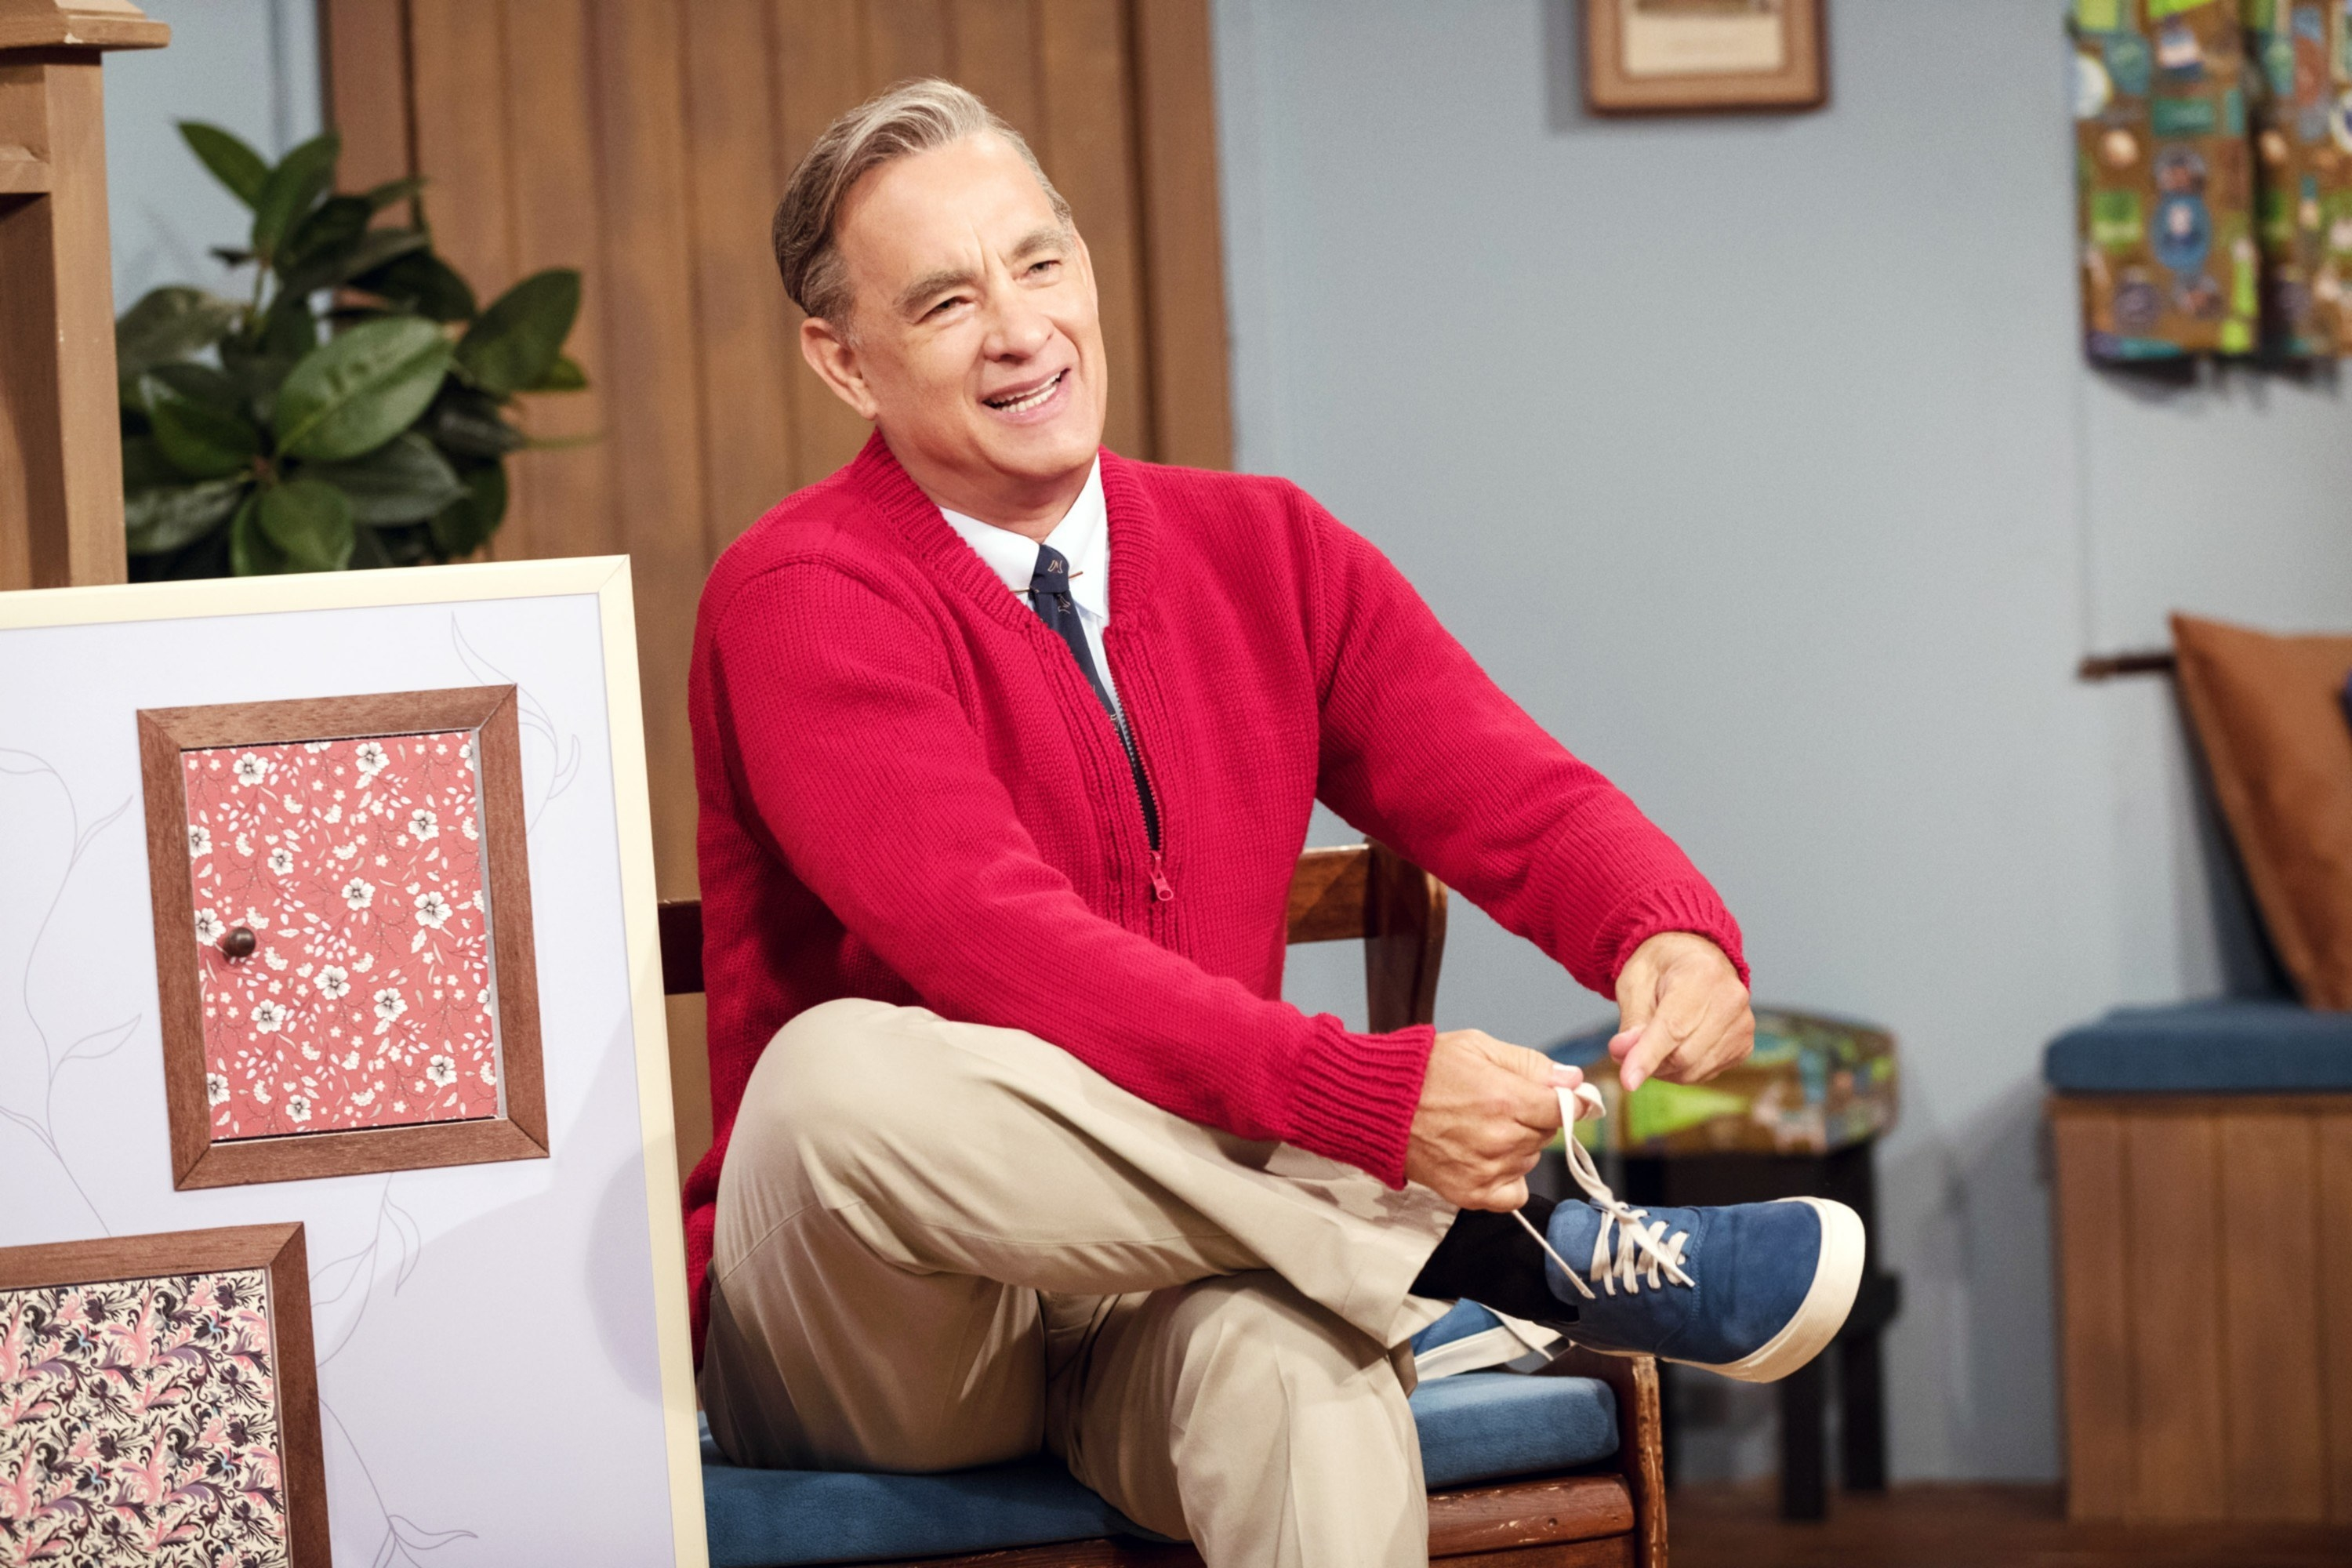 Fred Rogers dressed in sneakers, pants, a shirt and tie, and a sweater